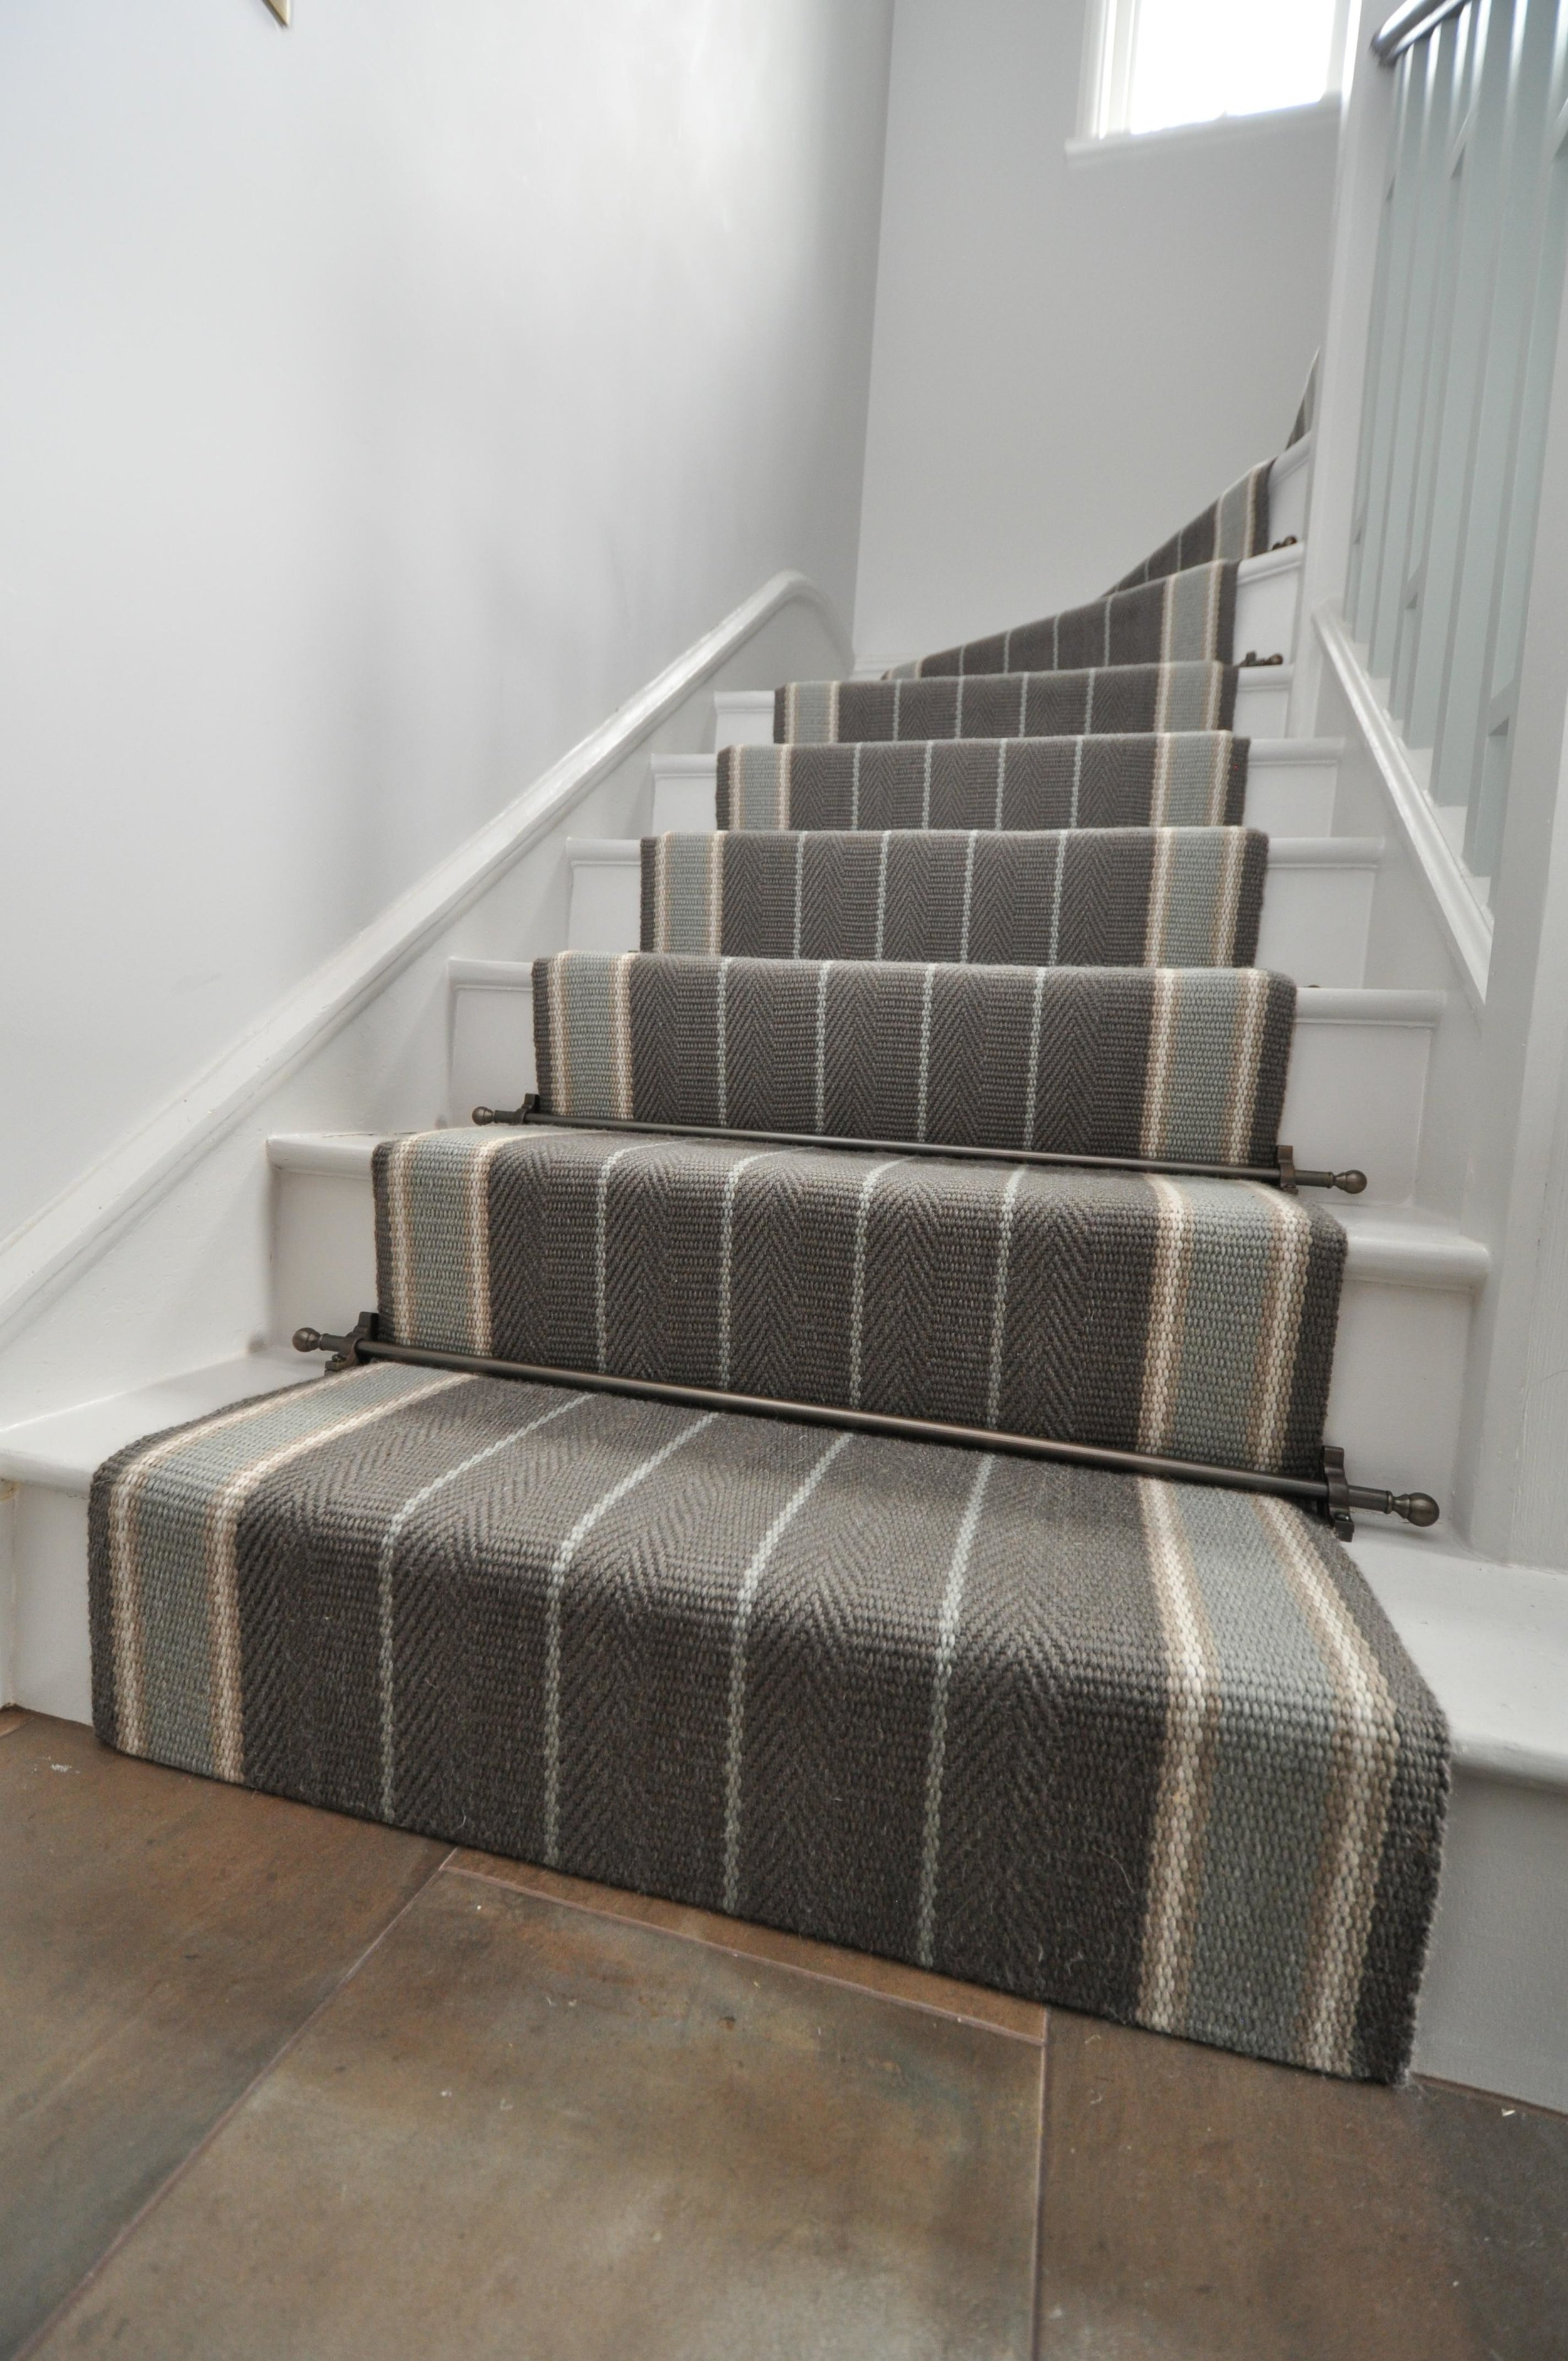 flatweave-stair-runner-london-bowloom-carpet-off-the-loom-DSC_1504.jpg